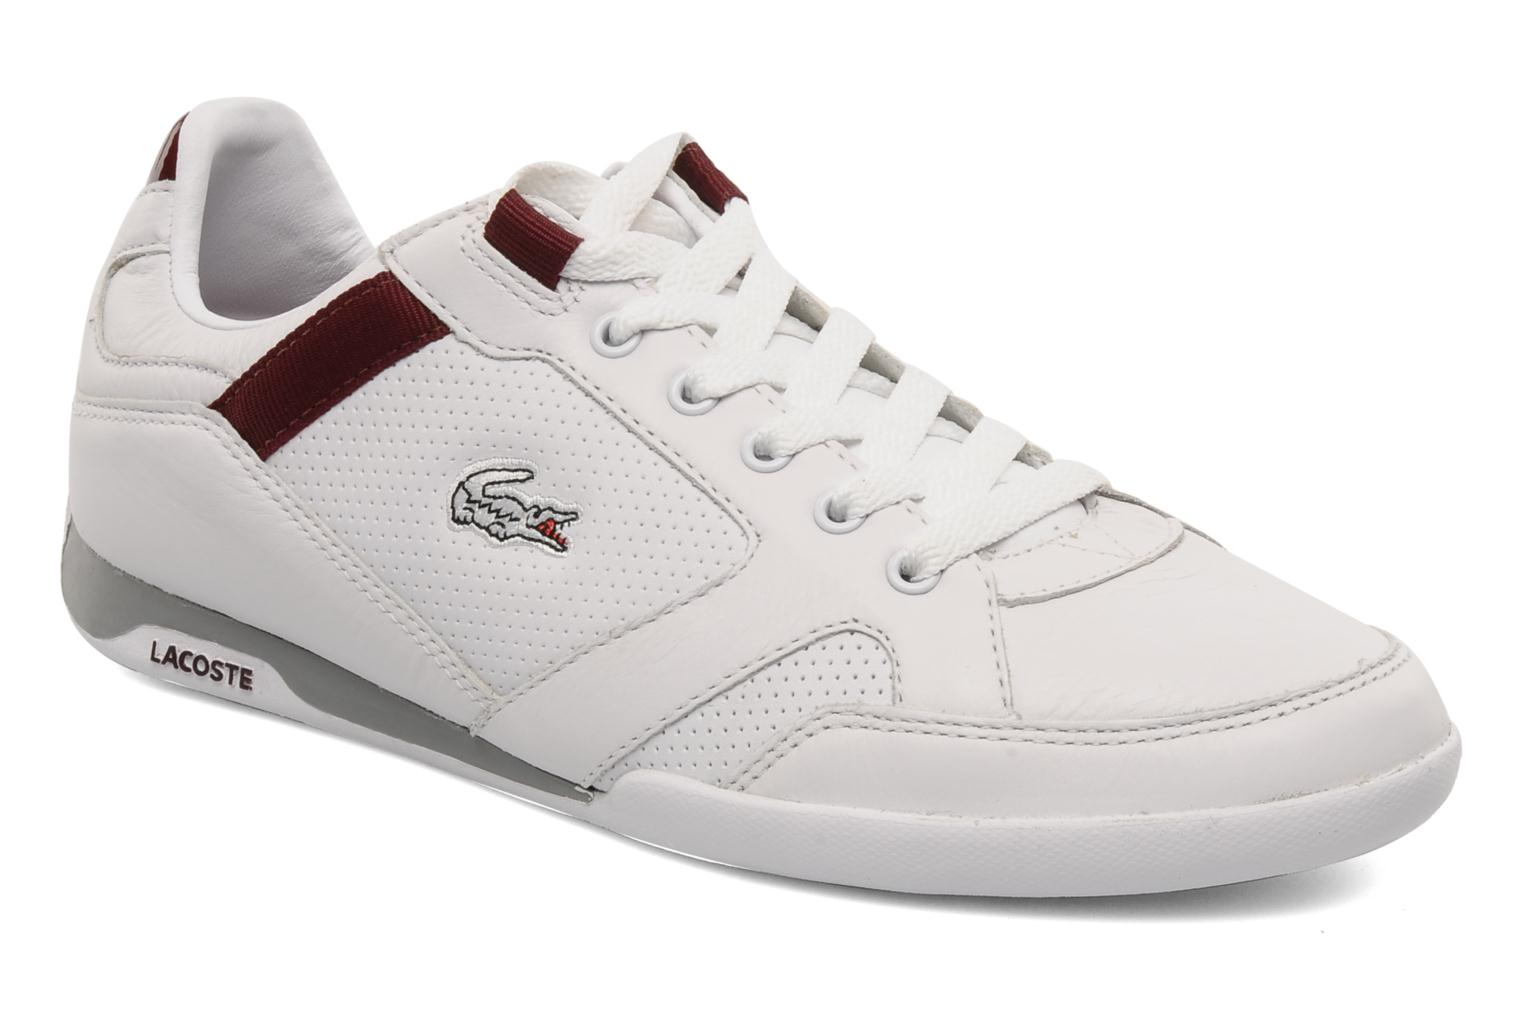 Telesio Hs White Dark Red